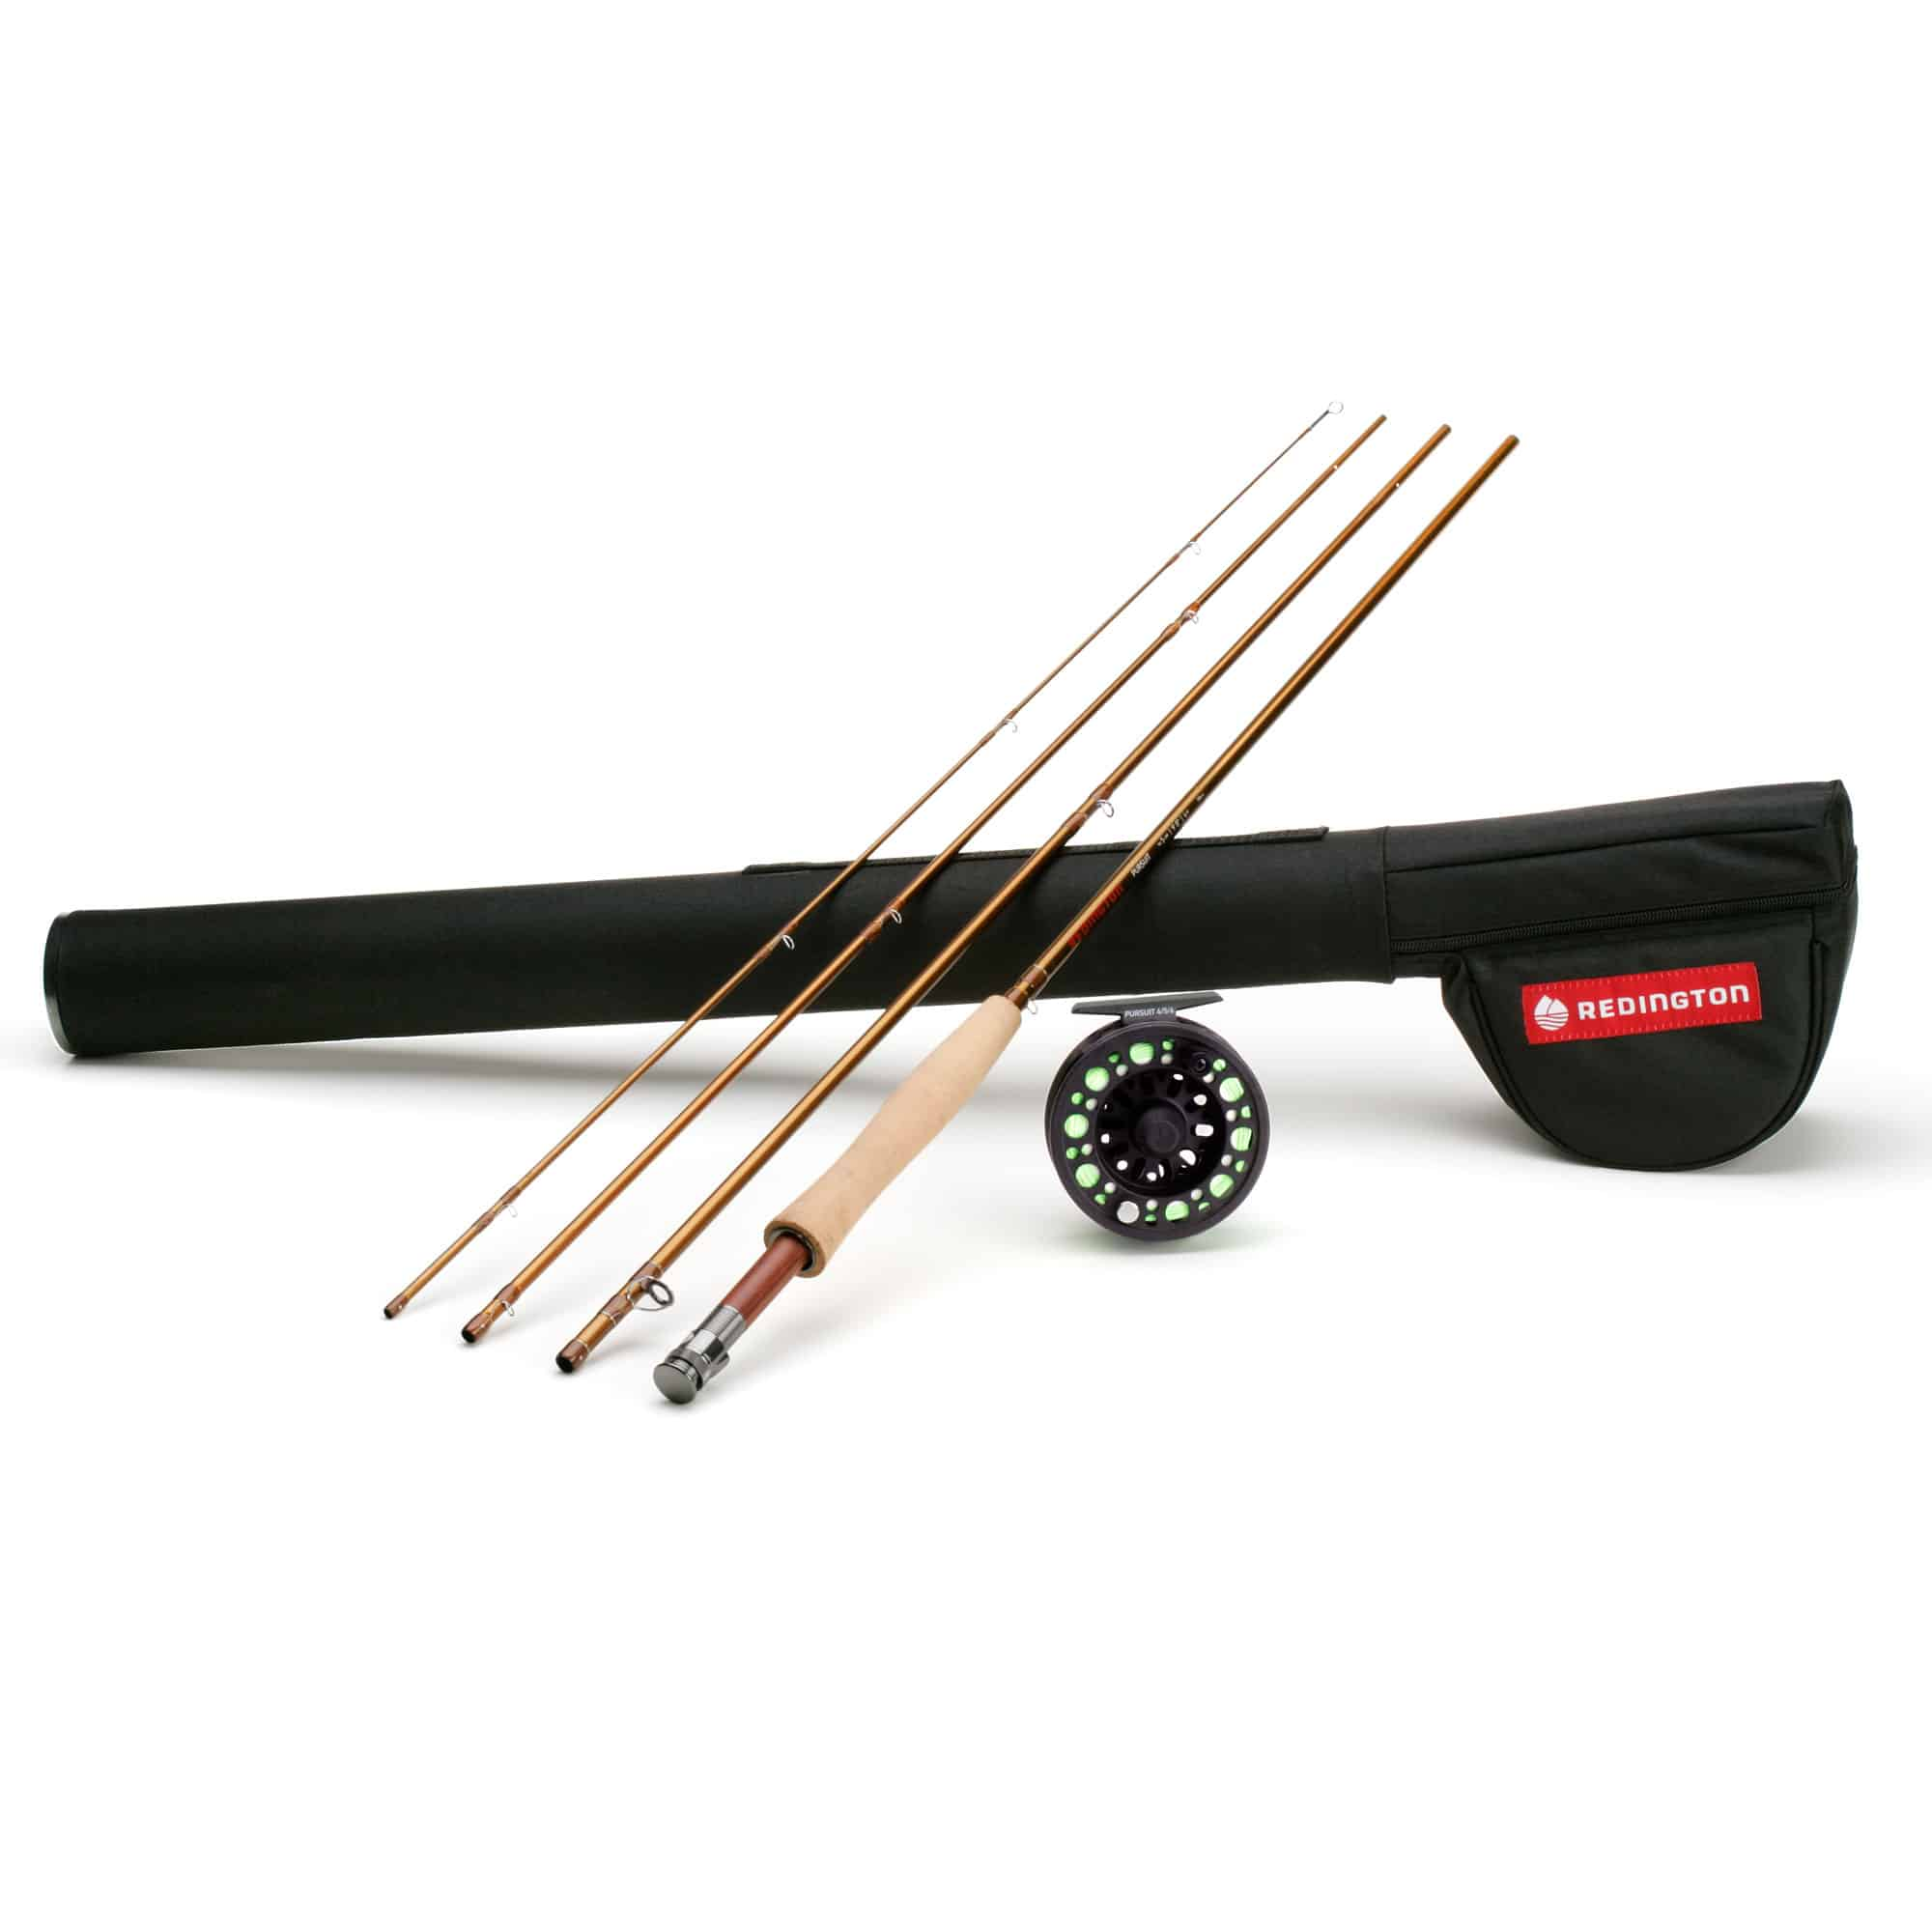 The best gifts and stocking stuffers for the fly fisherman for Fishing pole setup beginners